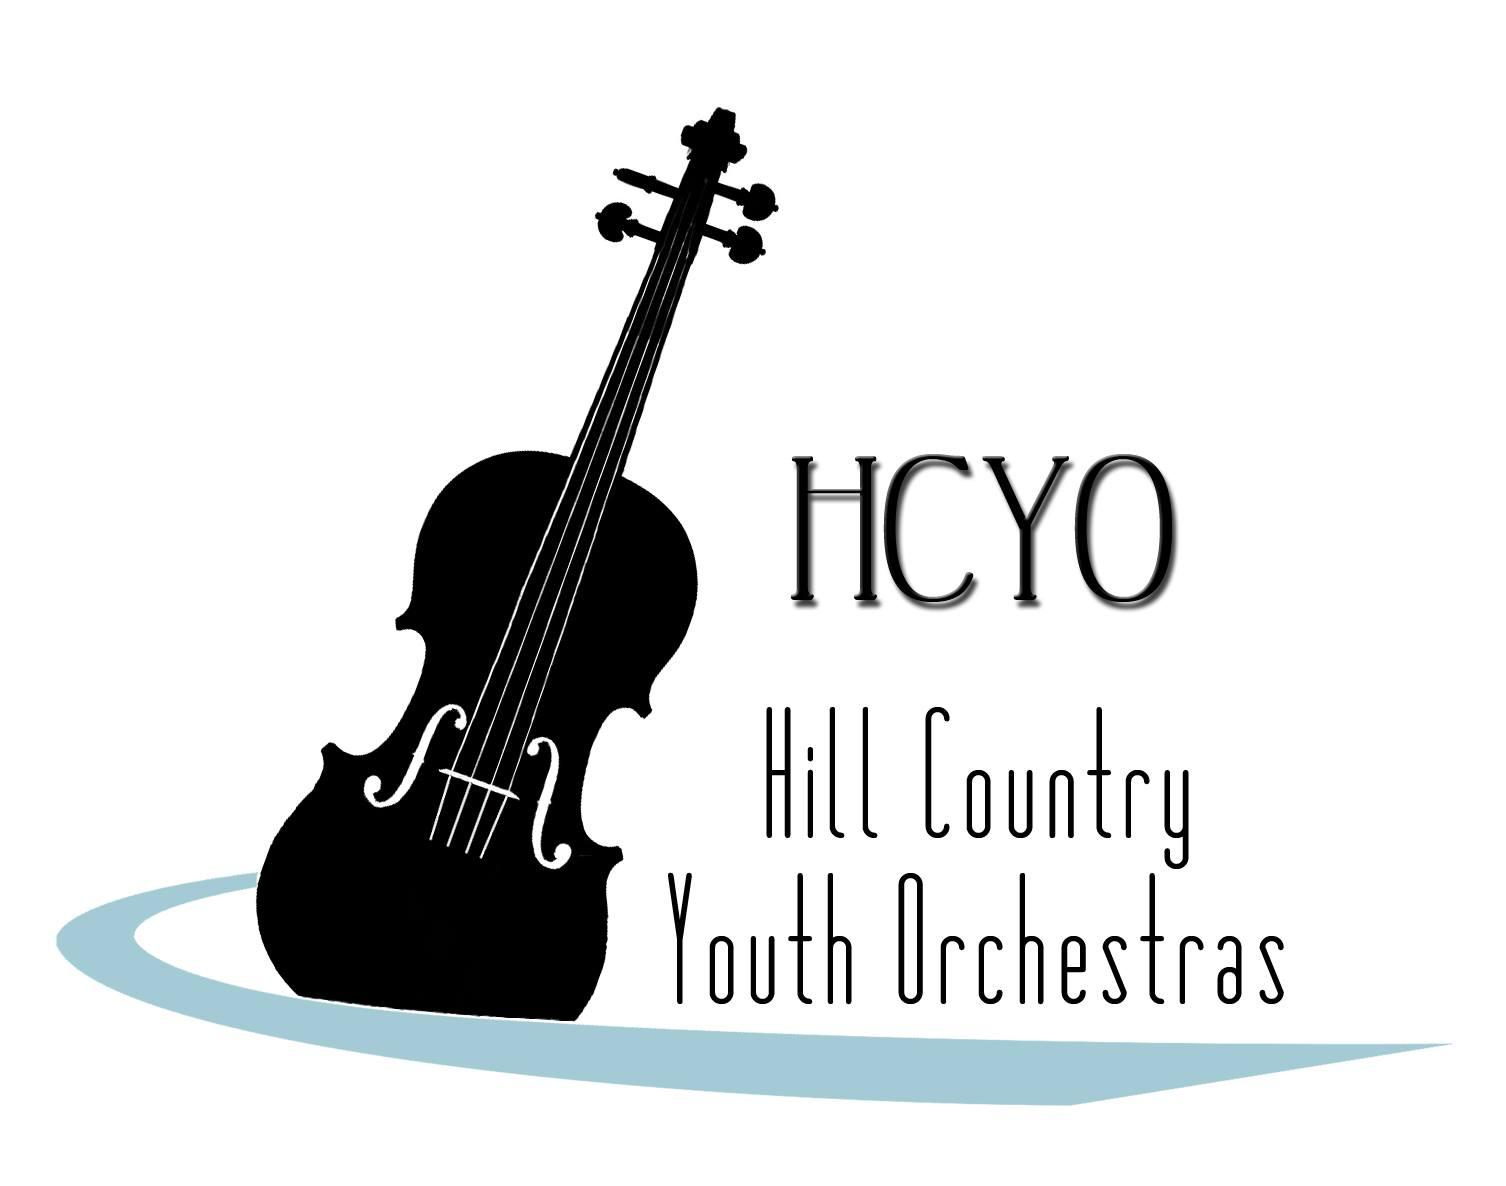 Hill Country Youth Orchestras